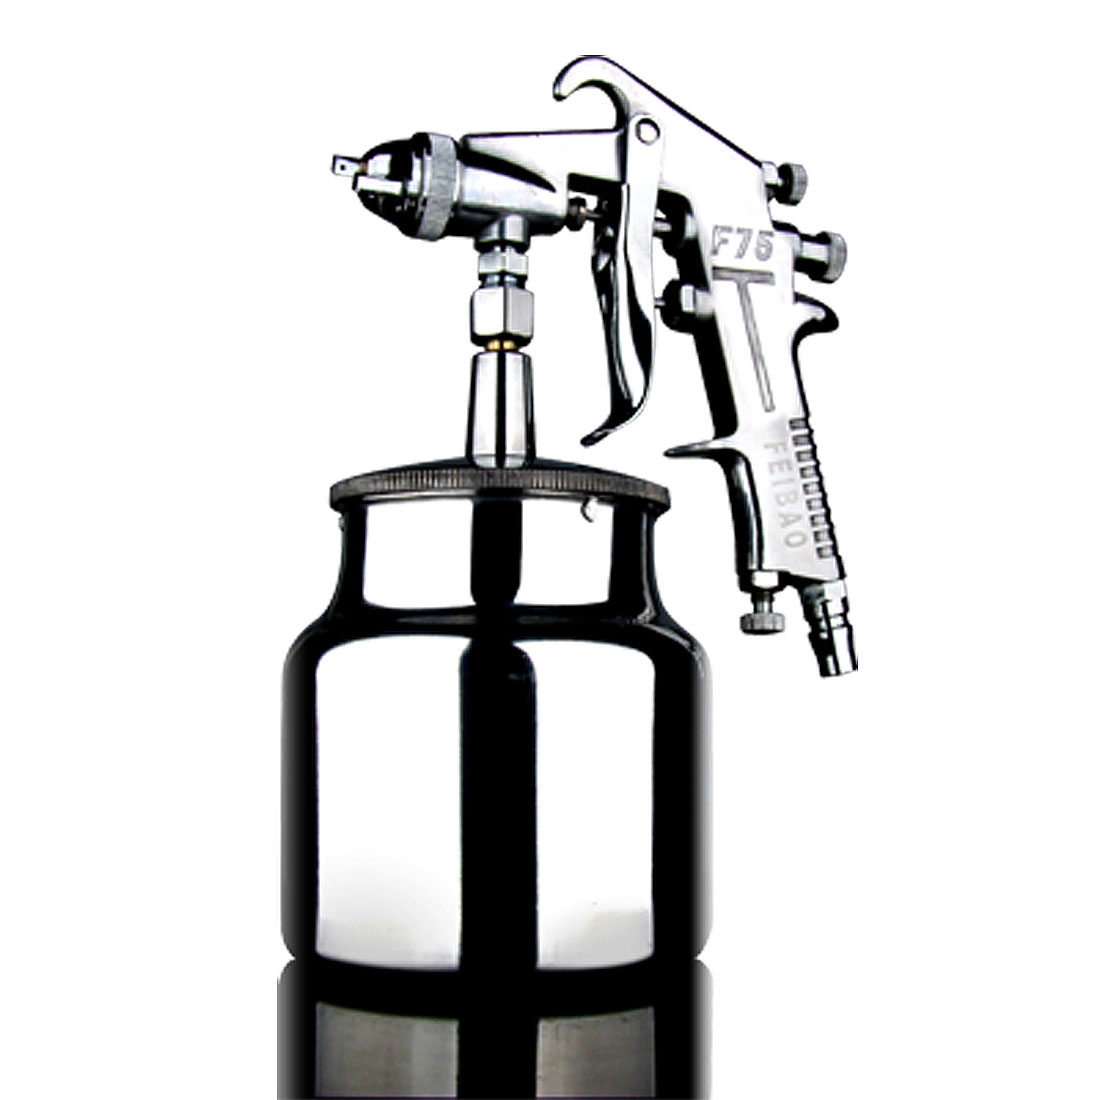 Unique Bargains Sliver Tone Aluminum Metal Paint Sprayer Gun Air Tool at Sears.com